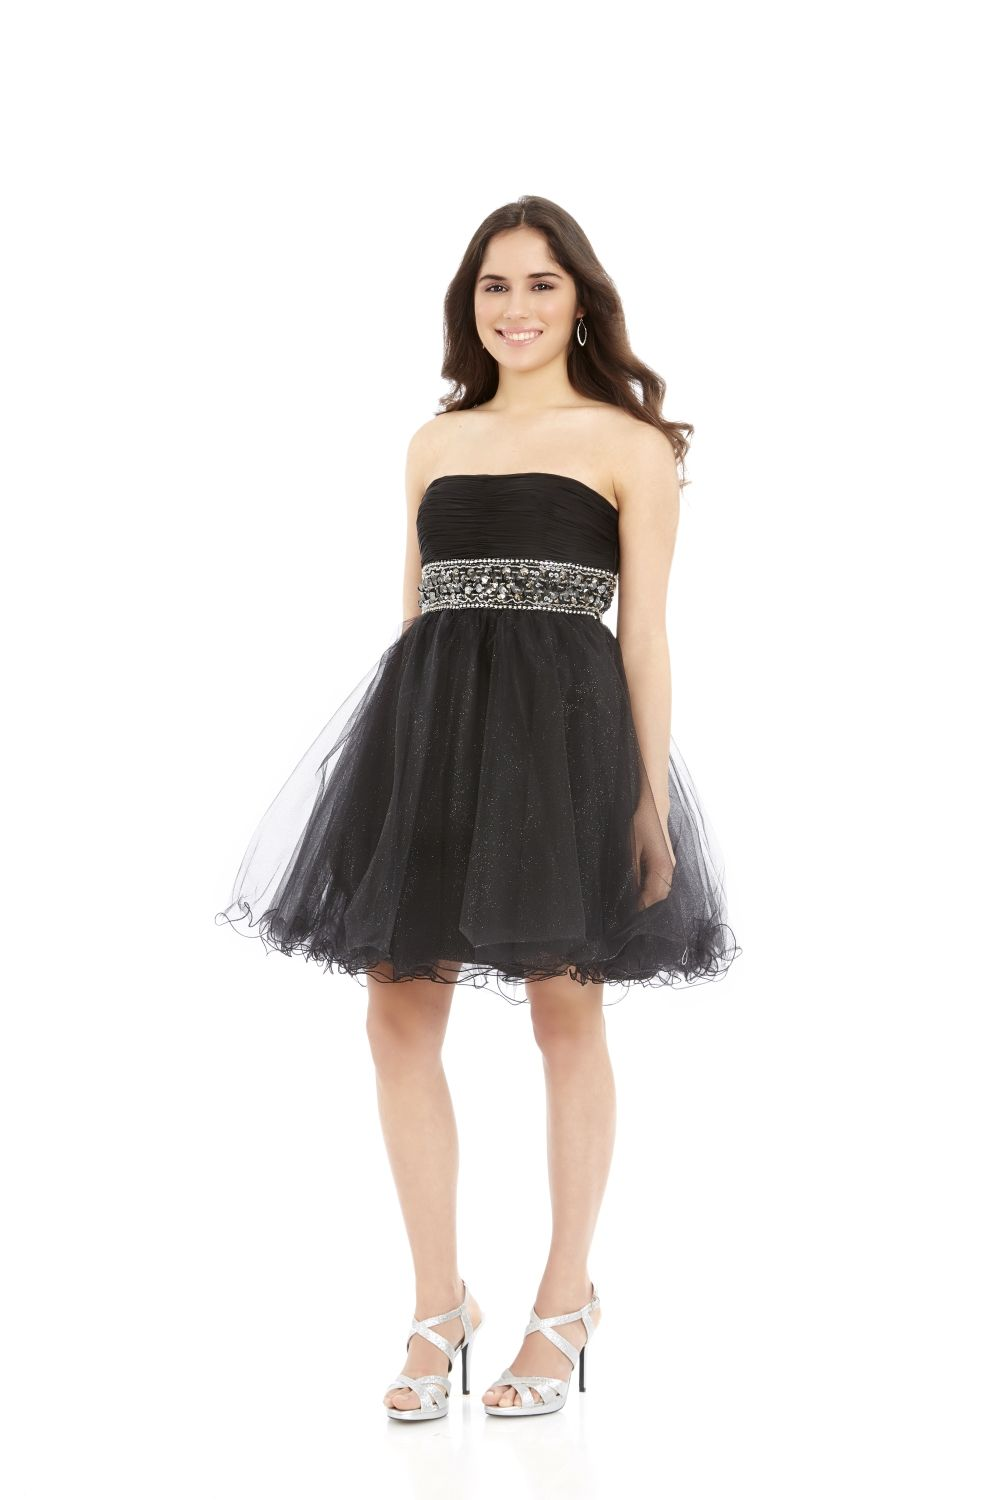 Have you ever wanted to BORROW a dress for your next occasion? Calling all tweens and teens: this is the spot! Borrow this Dave & Johnny Party Dress today!